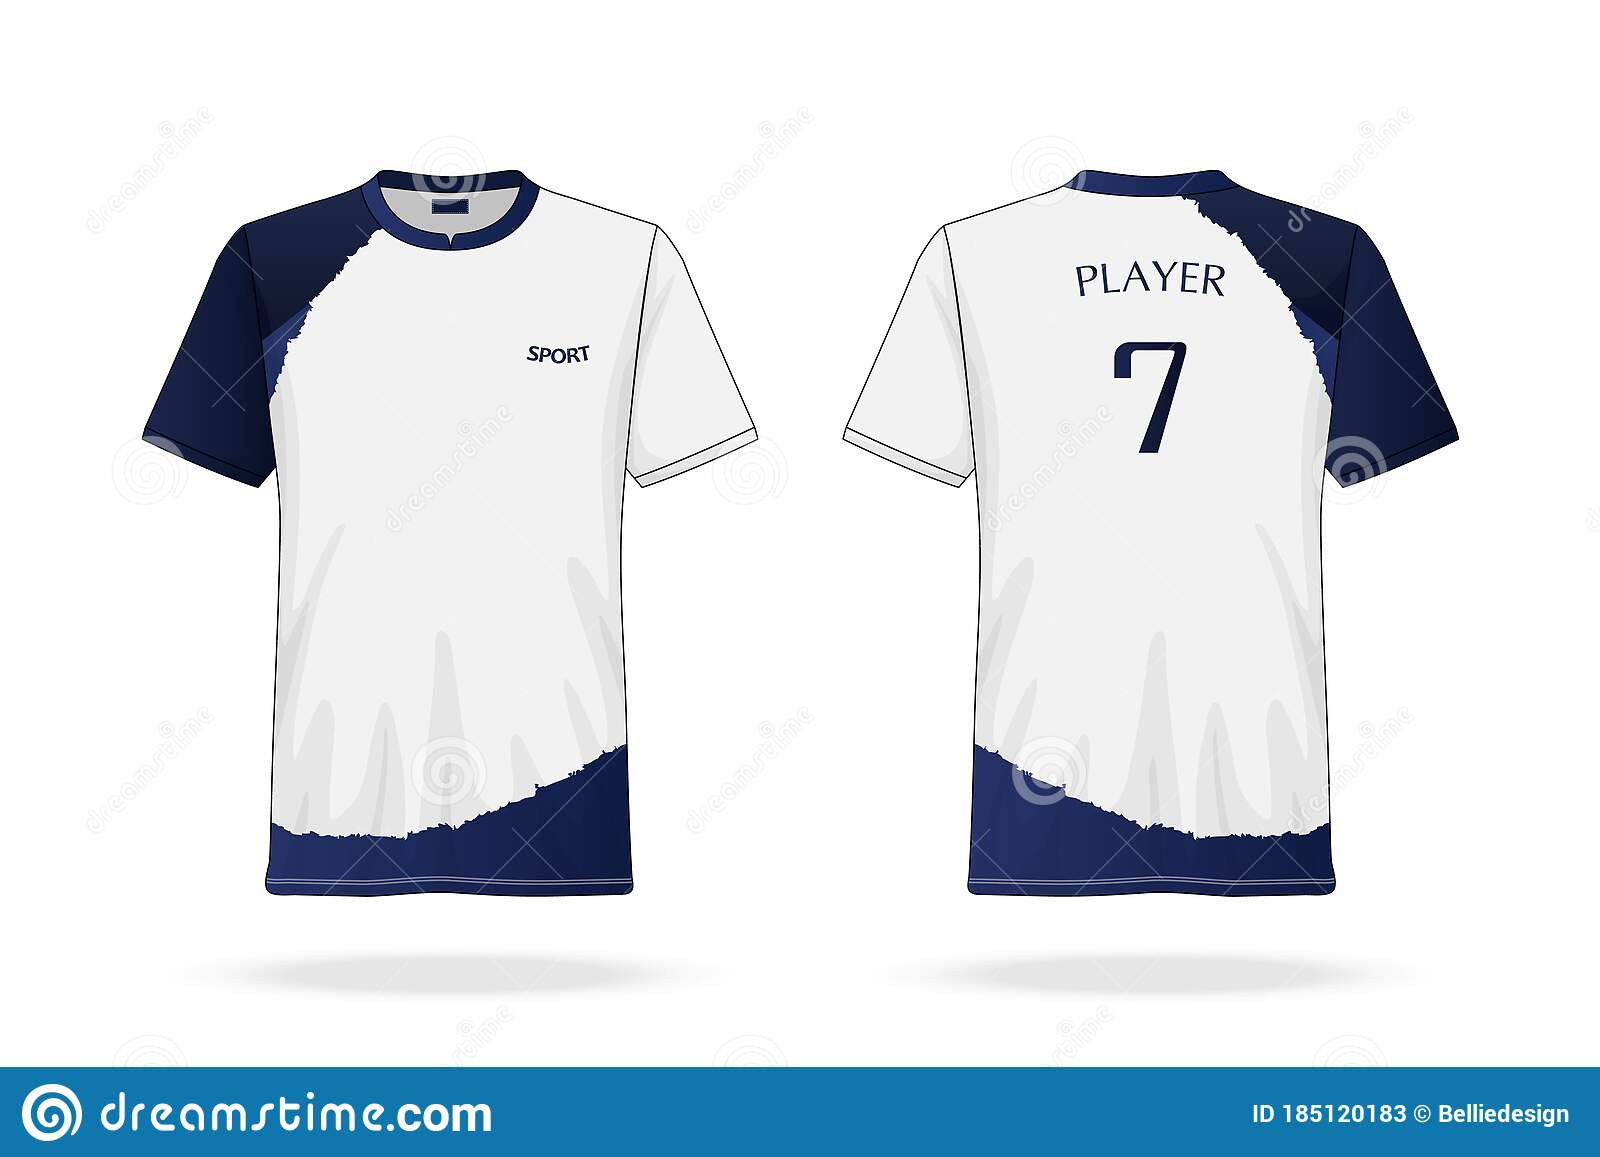 Pngtree offers over 496 esport. Specification Soccer Sport Esport Gaming T Shirt Round Neck Jersey Template Mock Up Uniform Vector Illustration Stock Vector Illustration Of White Esports 185120183